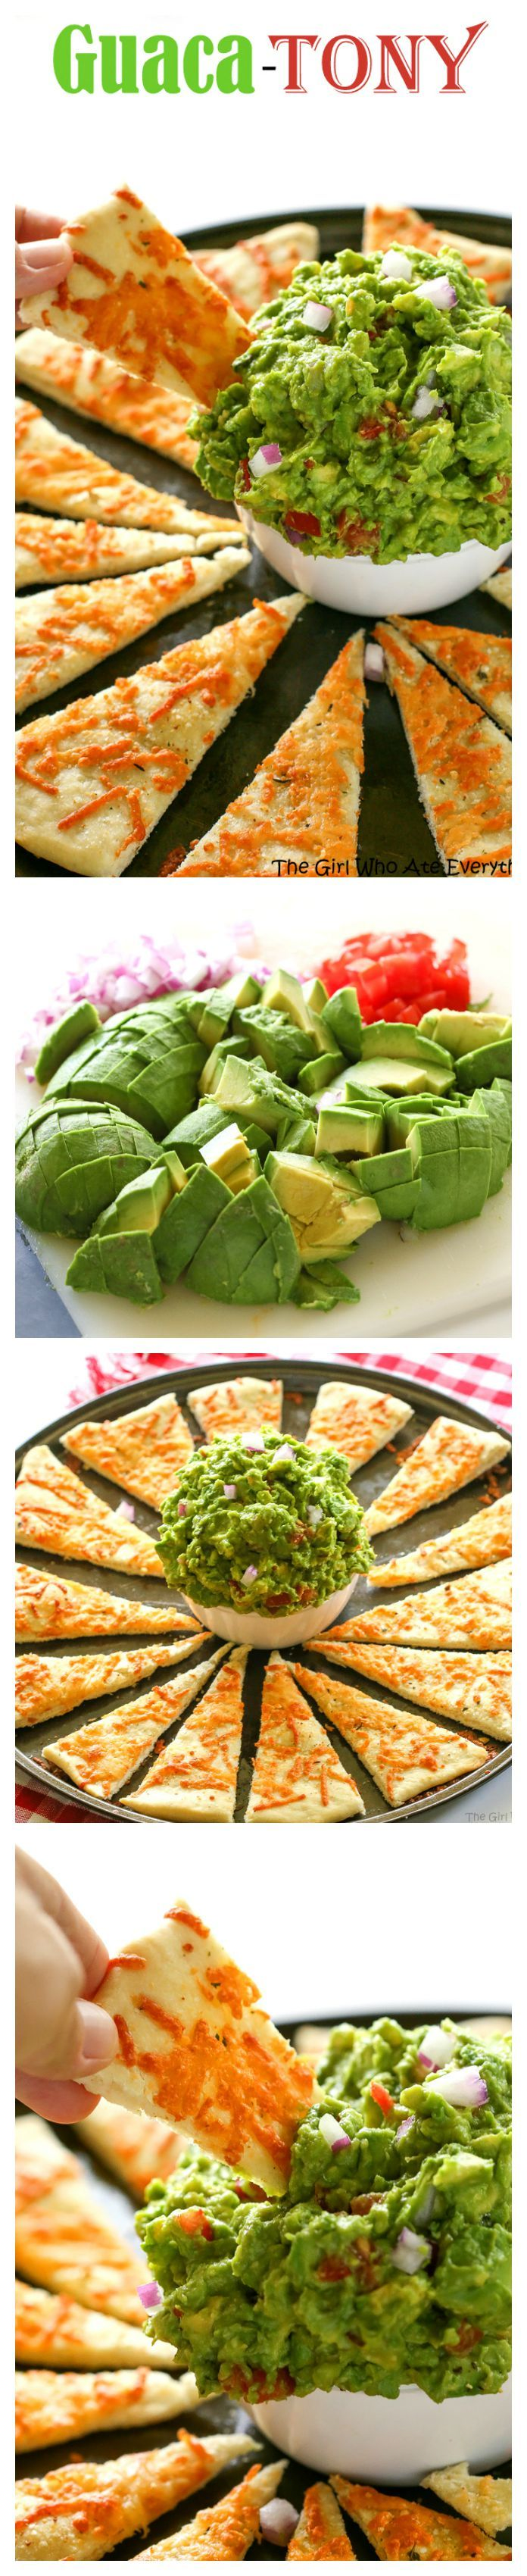 An Italian guacamole made with basil, garlic, avocado, red onions, and tomato. Instead of chips, super thin pizza crust strips are used. A knock-off from one of our favorite restaurant appetizers.